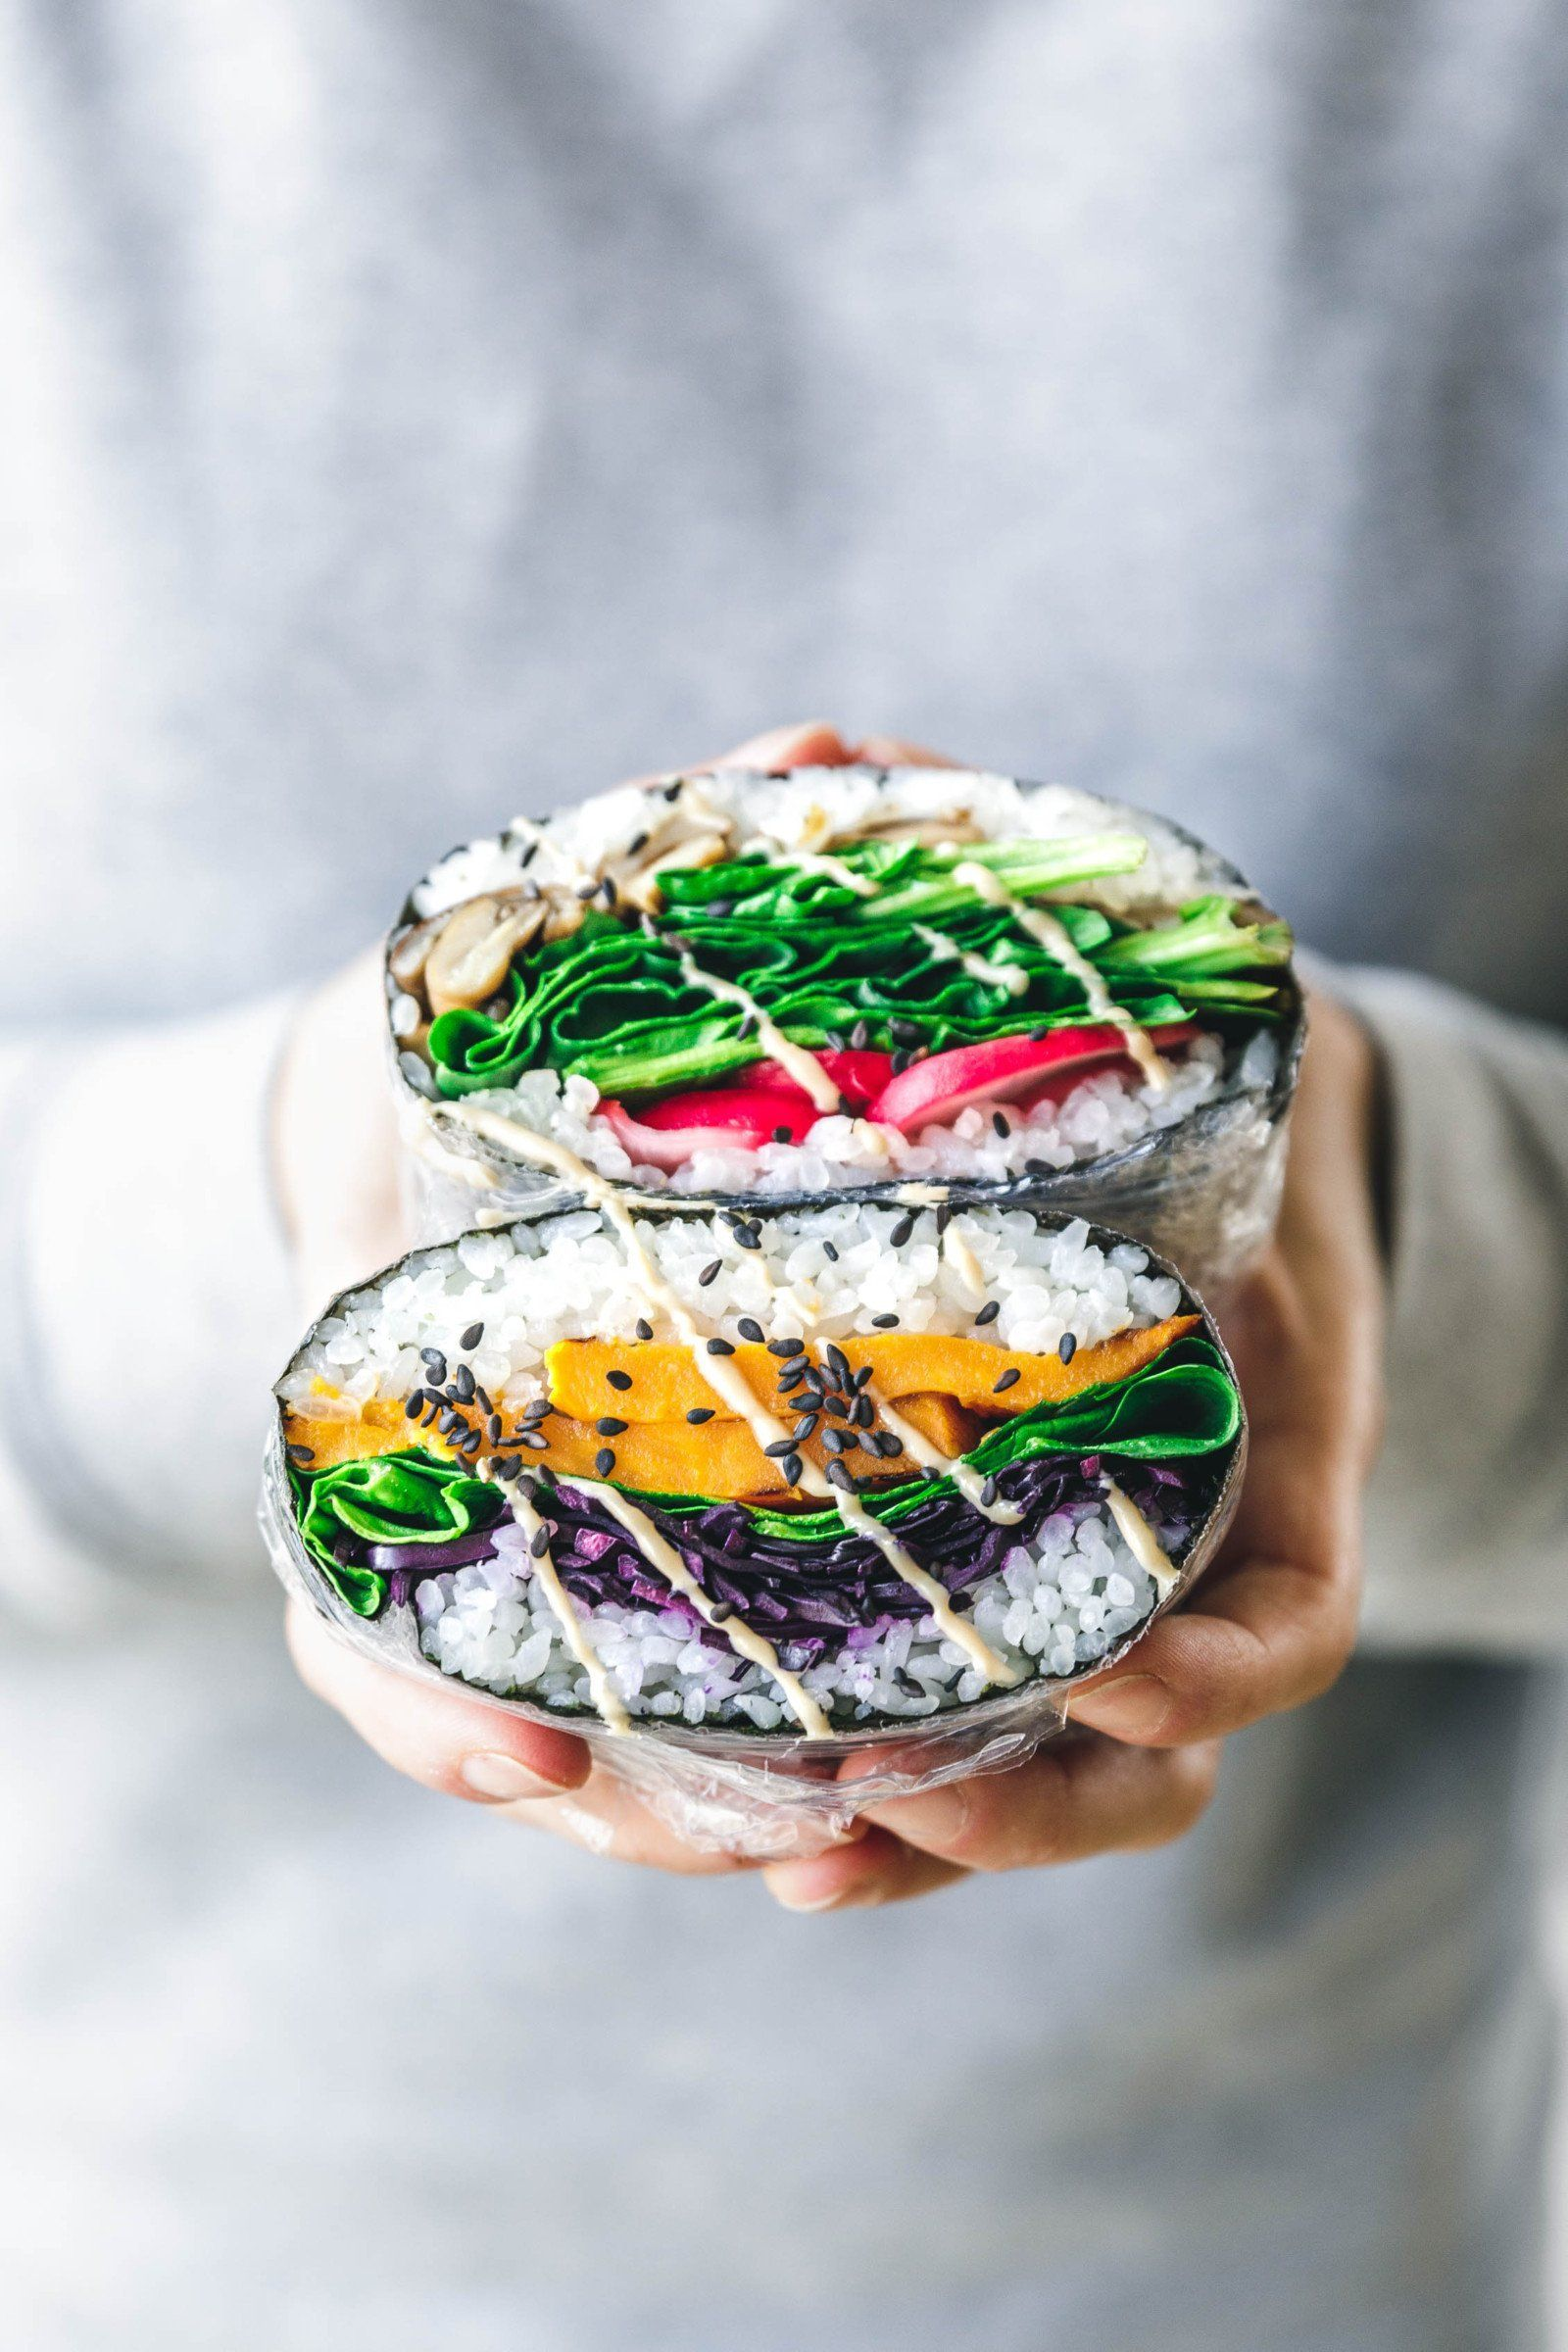 Photo of Vegane Sushi-Sandwiches • Iss das! Veganes Essen & Lifestyle